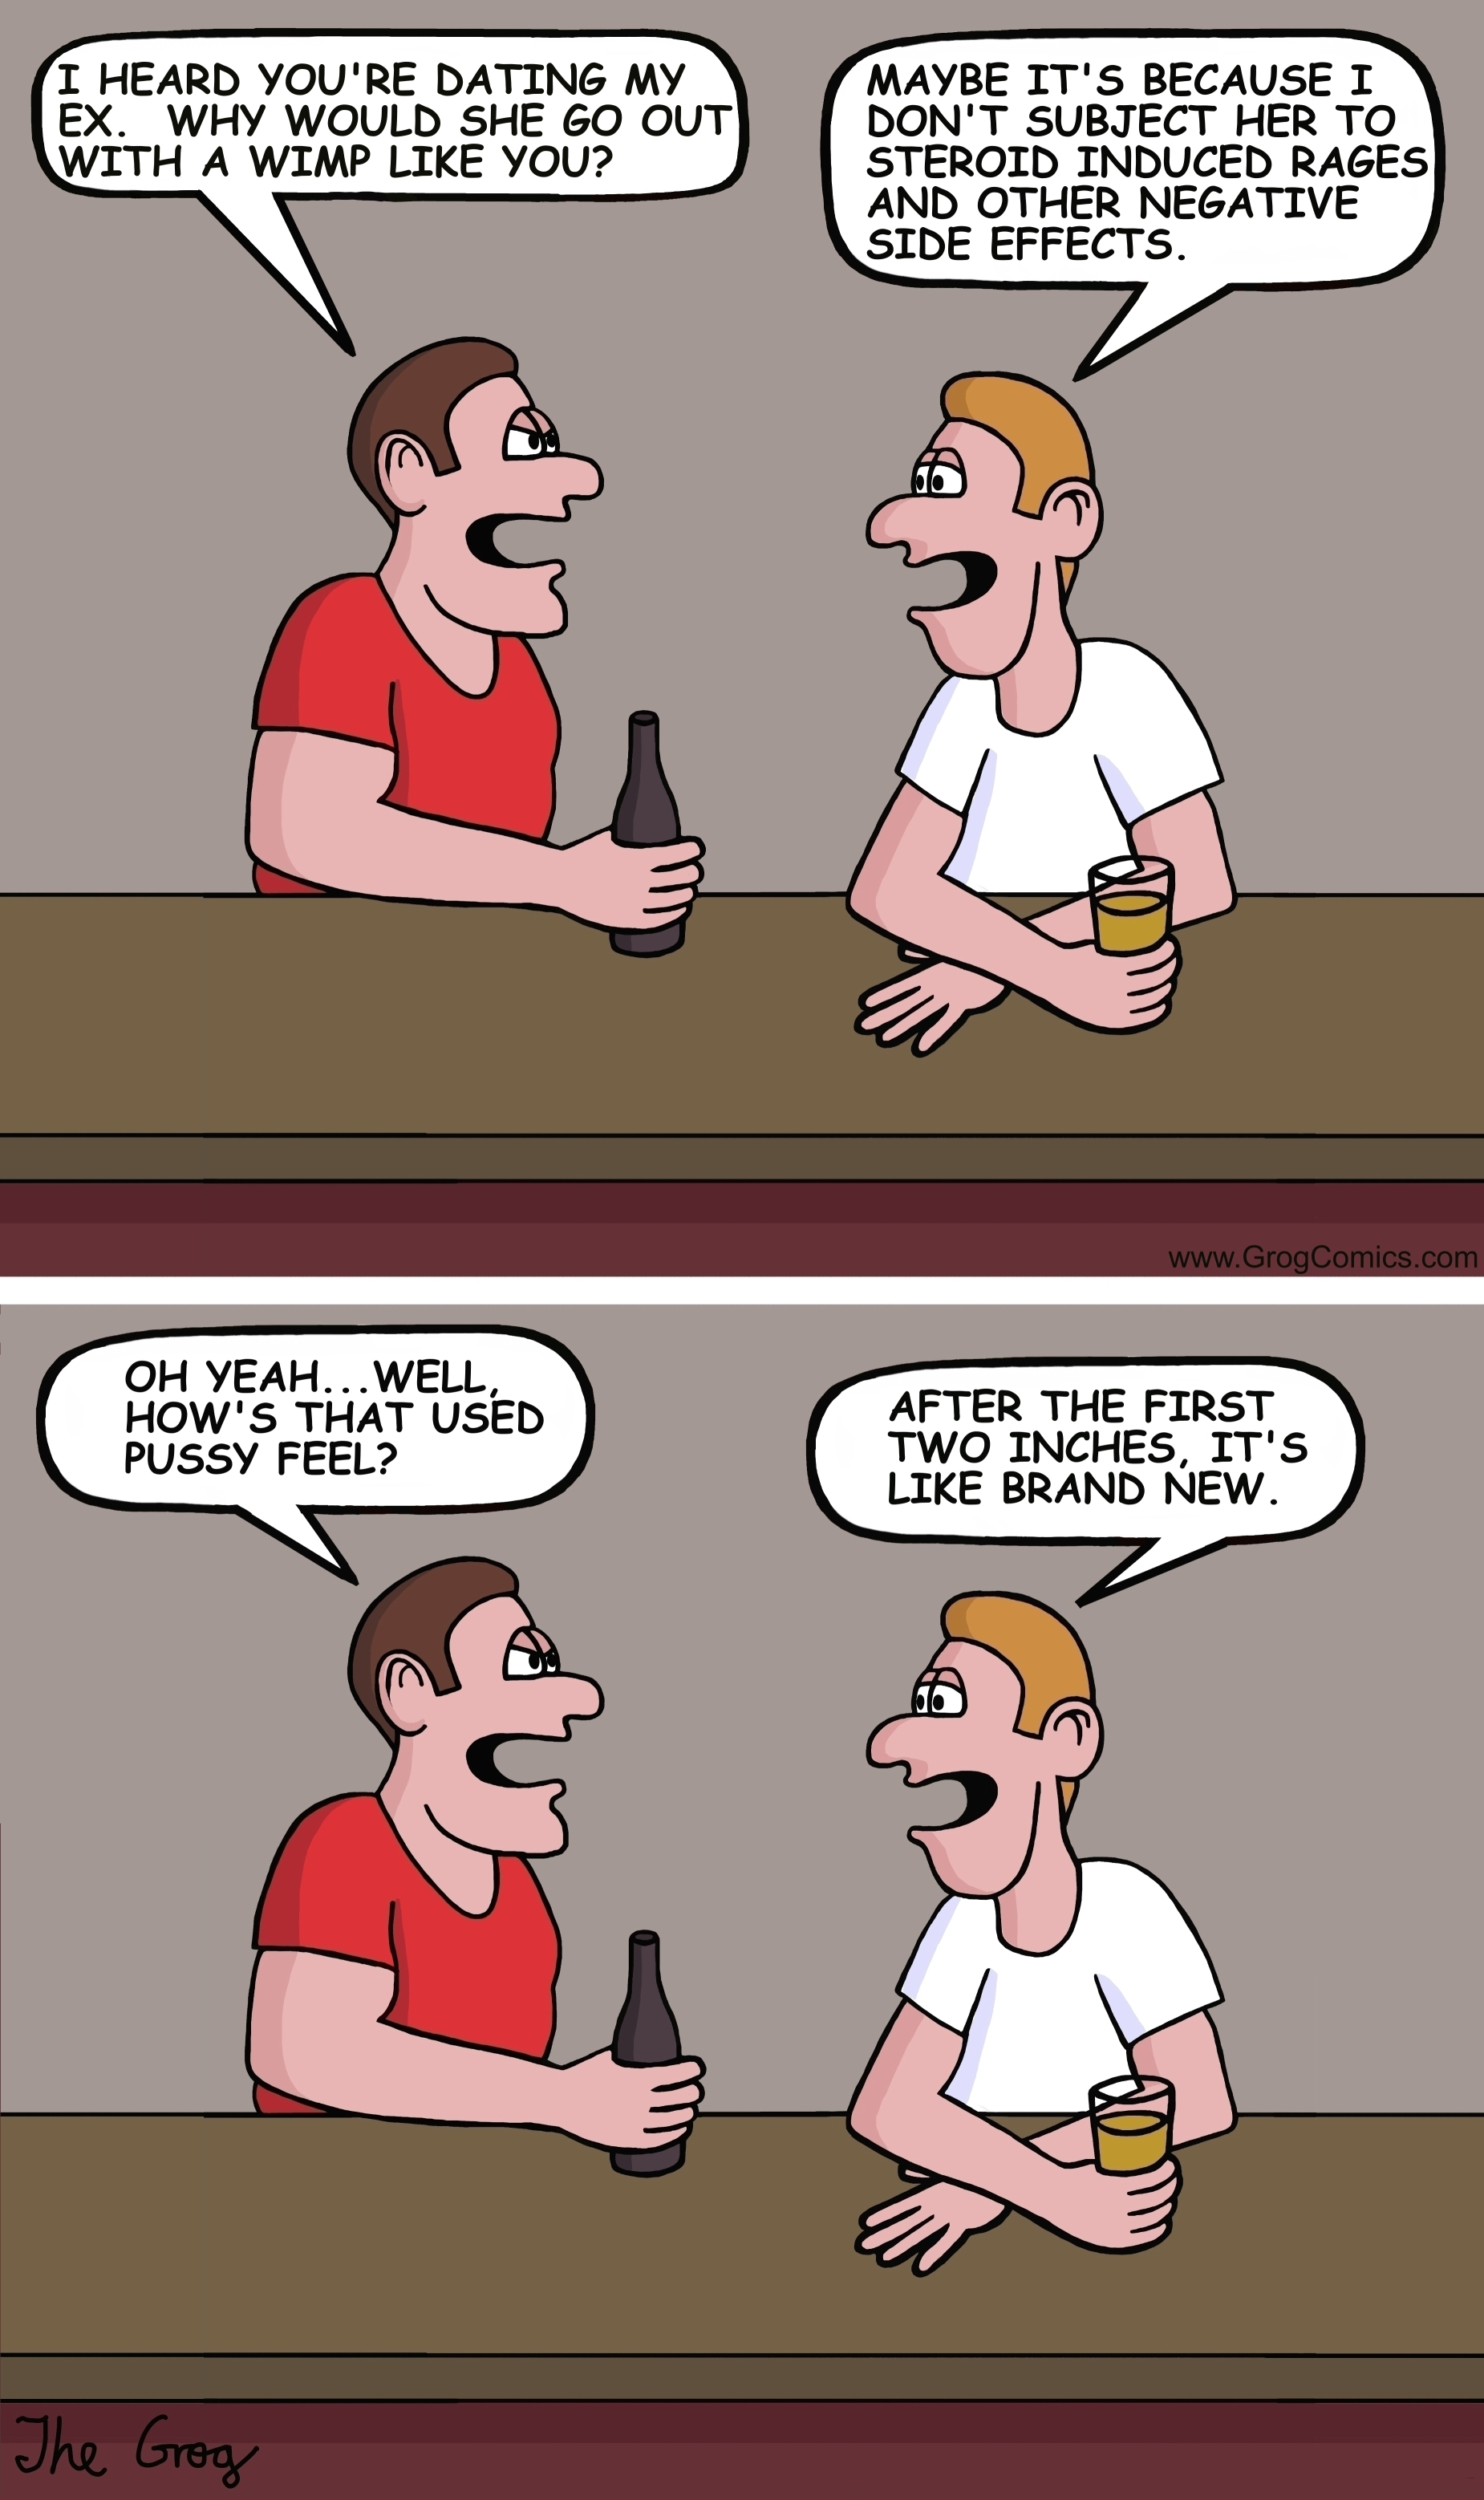 """Two guys are sitting at a bar. One of them is really muscular. It's more than obvious that he takes steroids. The big guy turns to the littler one and says, """"I heard you're dating my ex. Why would she go out with a wimp like you?"""" The smaller guy says, """"Maybe, it's because I don't subject her to steroid induced rages and other negative side effects."""" The big guy says, """"Oh yeah...well how's that used vagina feel?"""" The smaller guys says, """"After the first two inches, it's like brand new."""""""